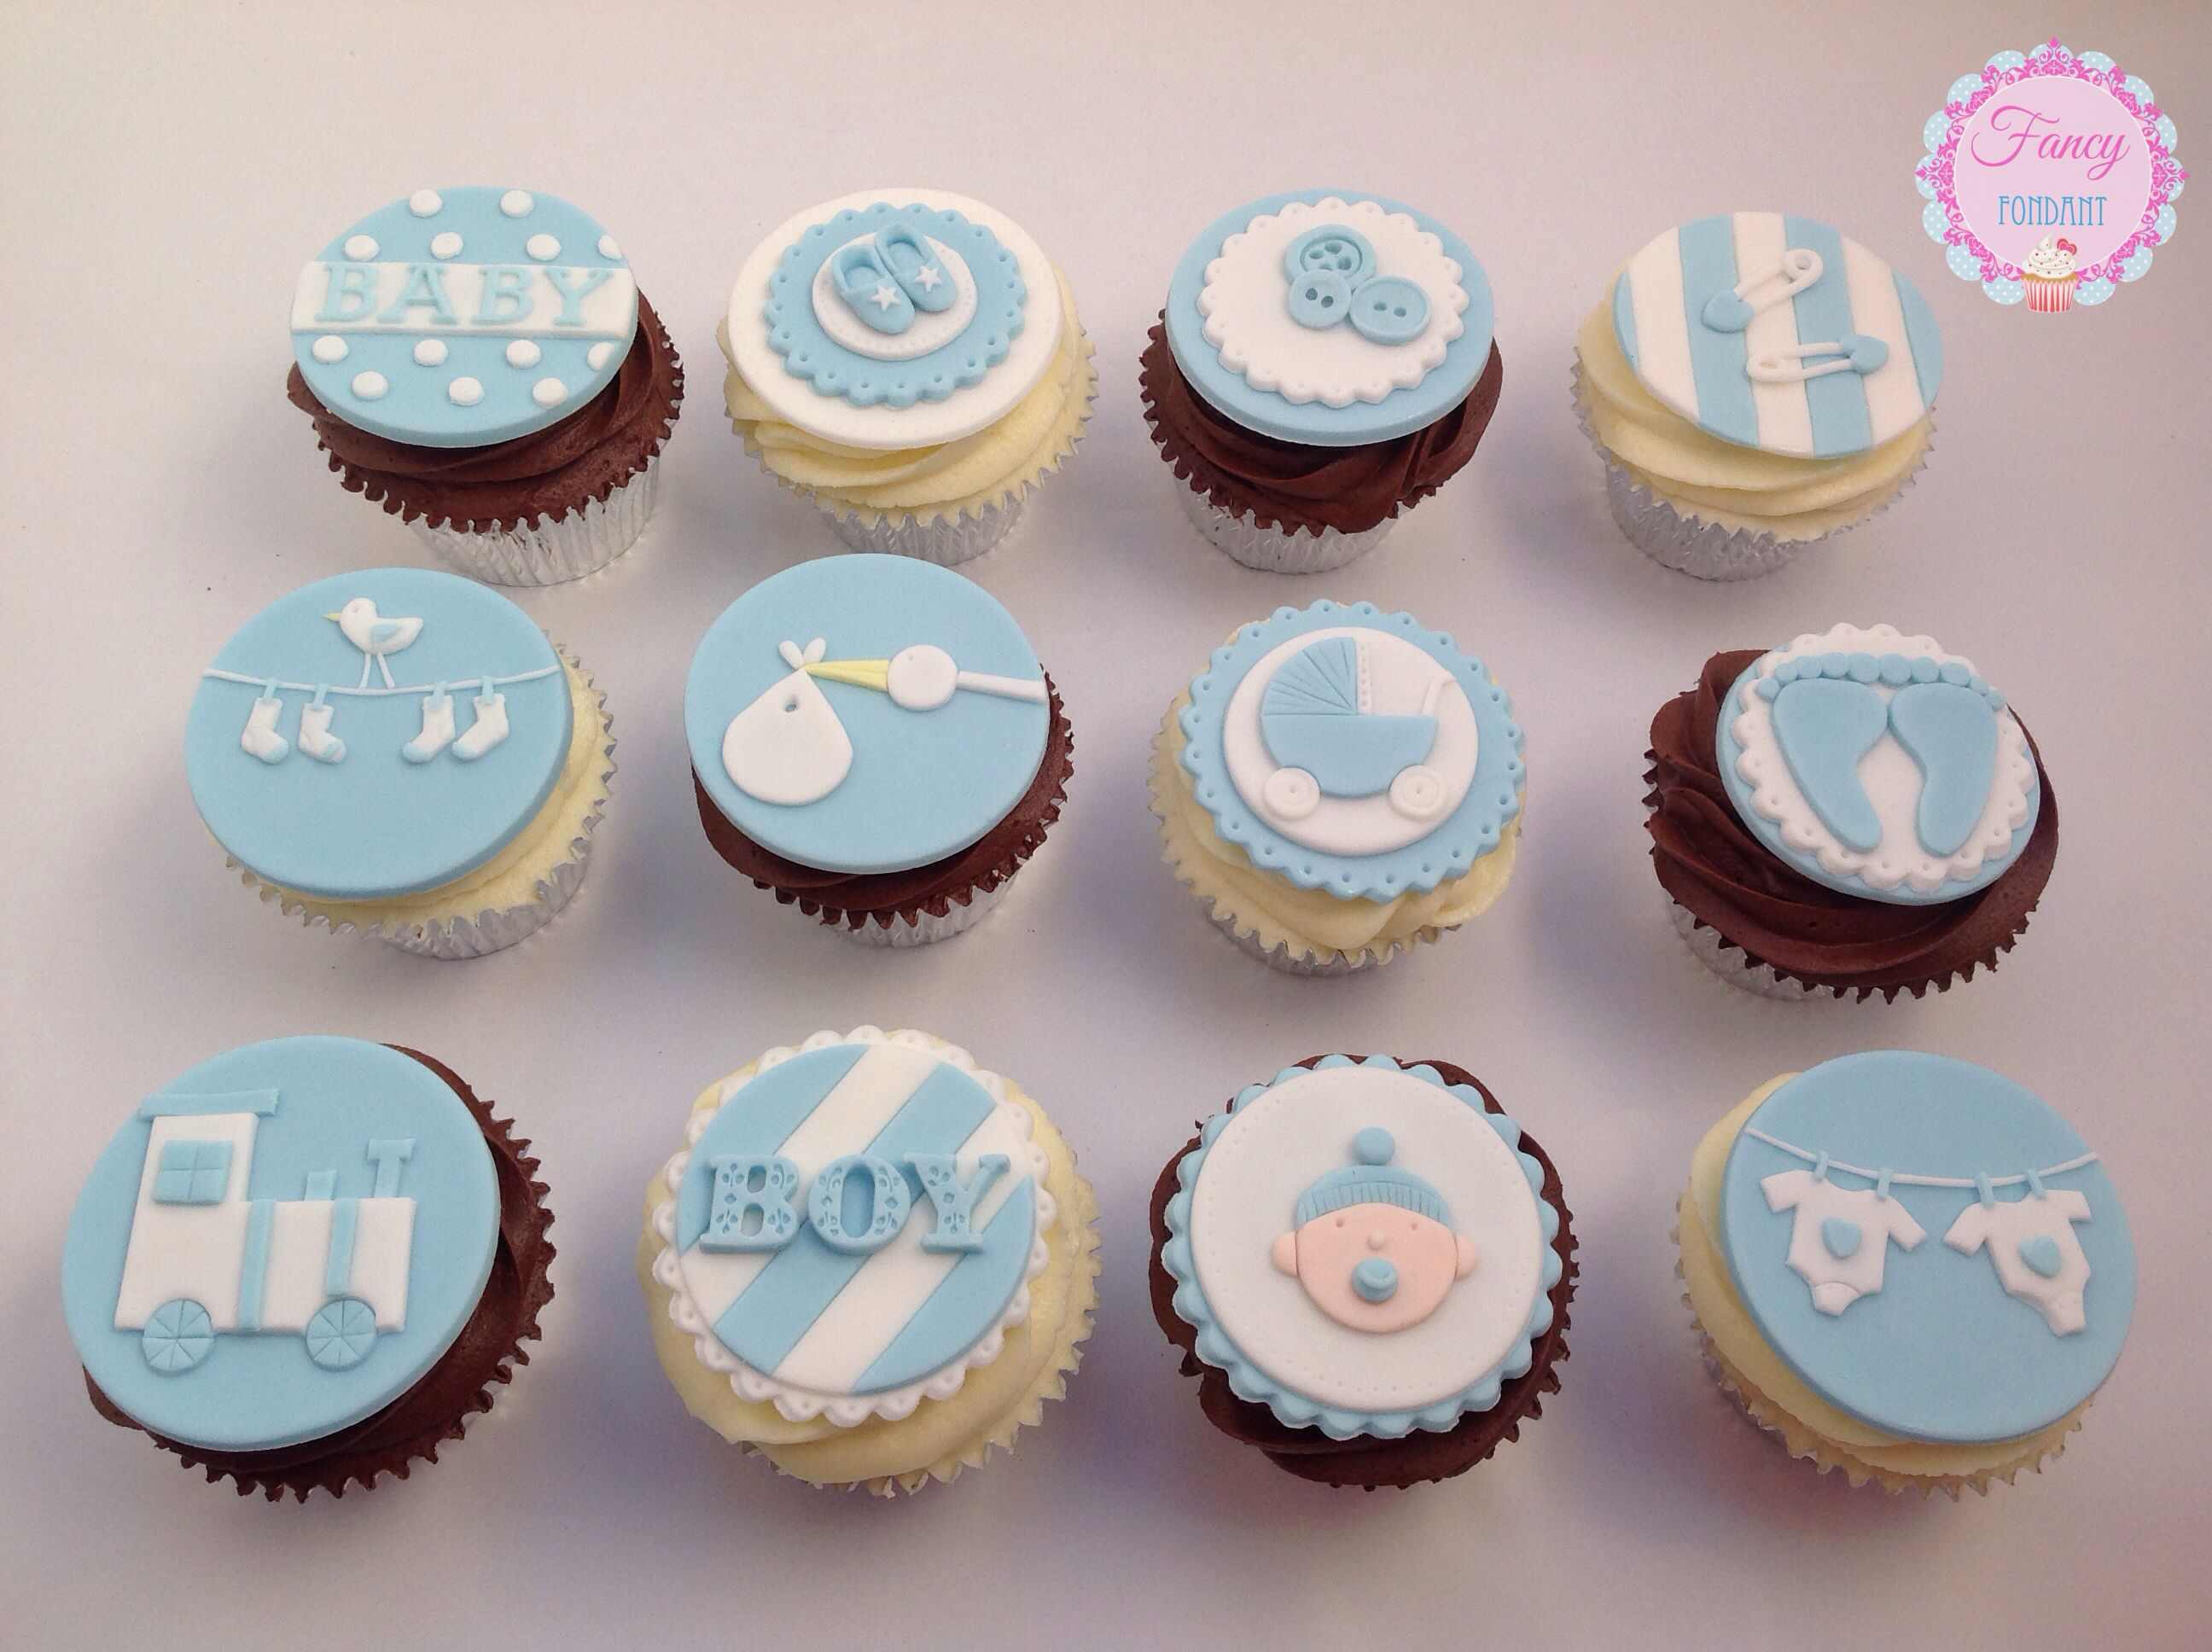 Baby Boy Baby Shower Cupcakes ~ Baby boy baby shower cupcake set by emily at fancy fondant cakes